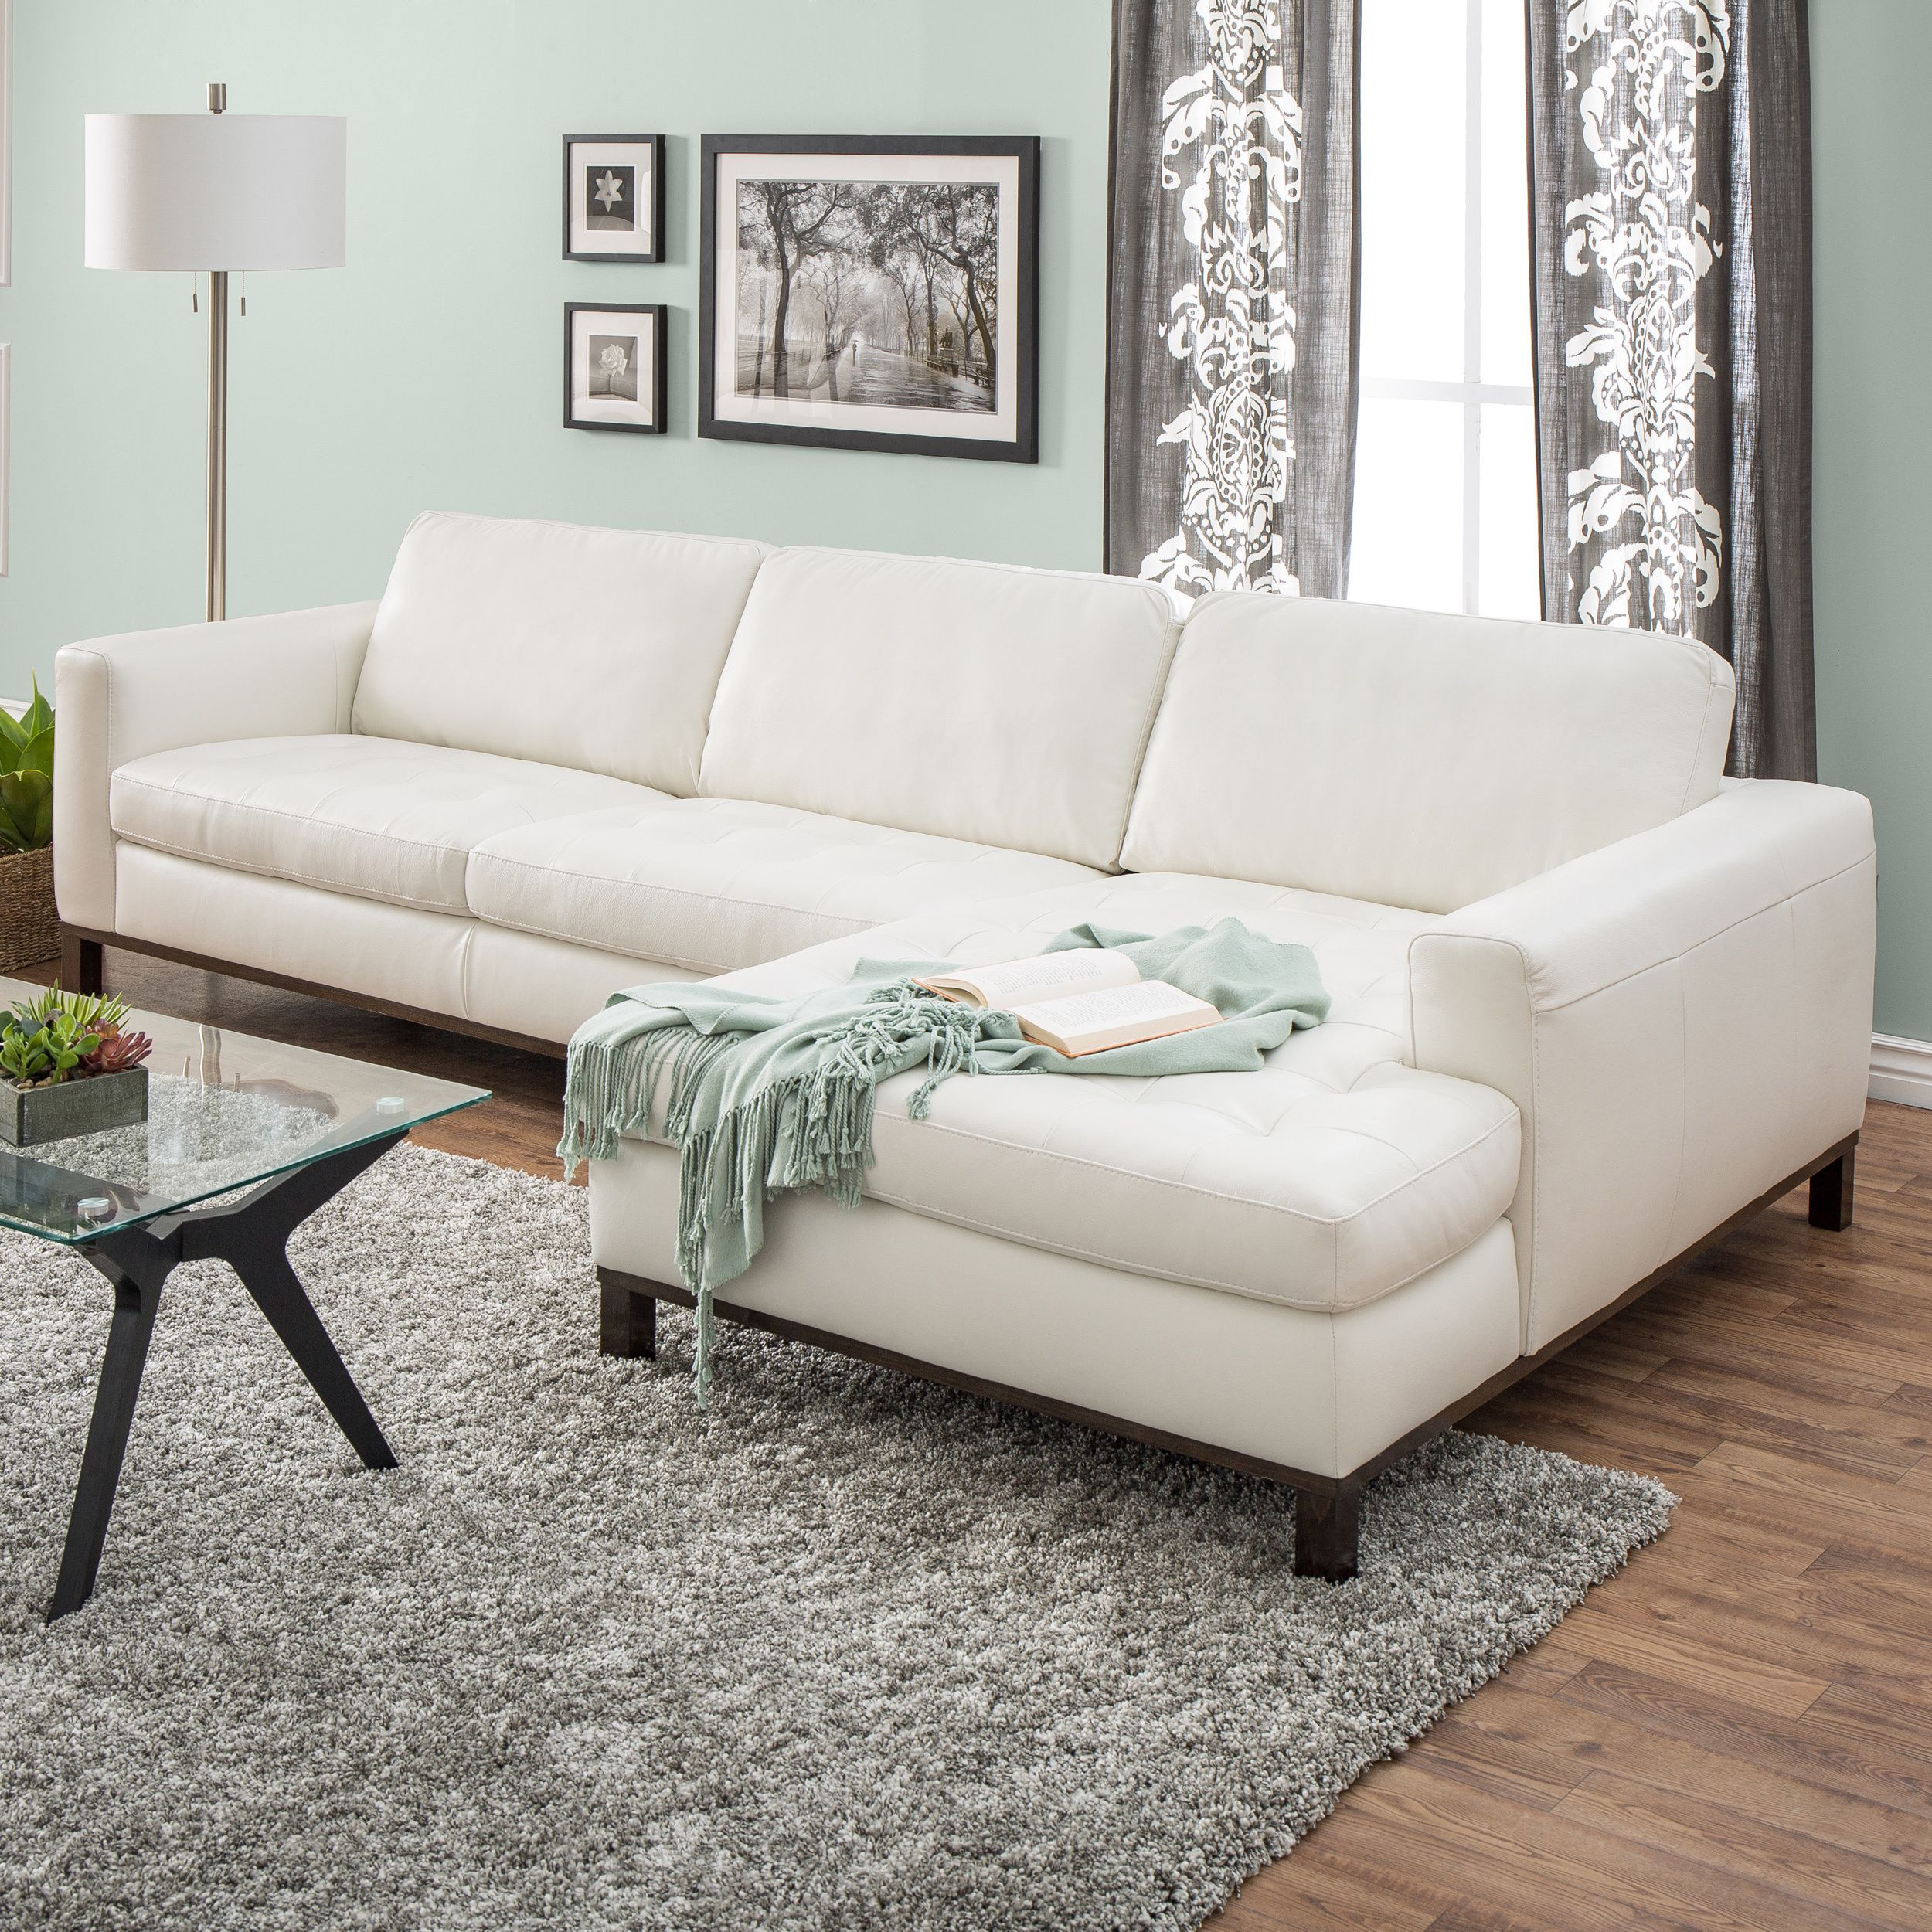 Overstock Com Online Shopping Bedding Furniture Electronics Jewelry Clothing More White Leather Sofas Cream Leather Sofa Living Room White Leather Couch